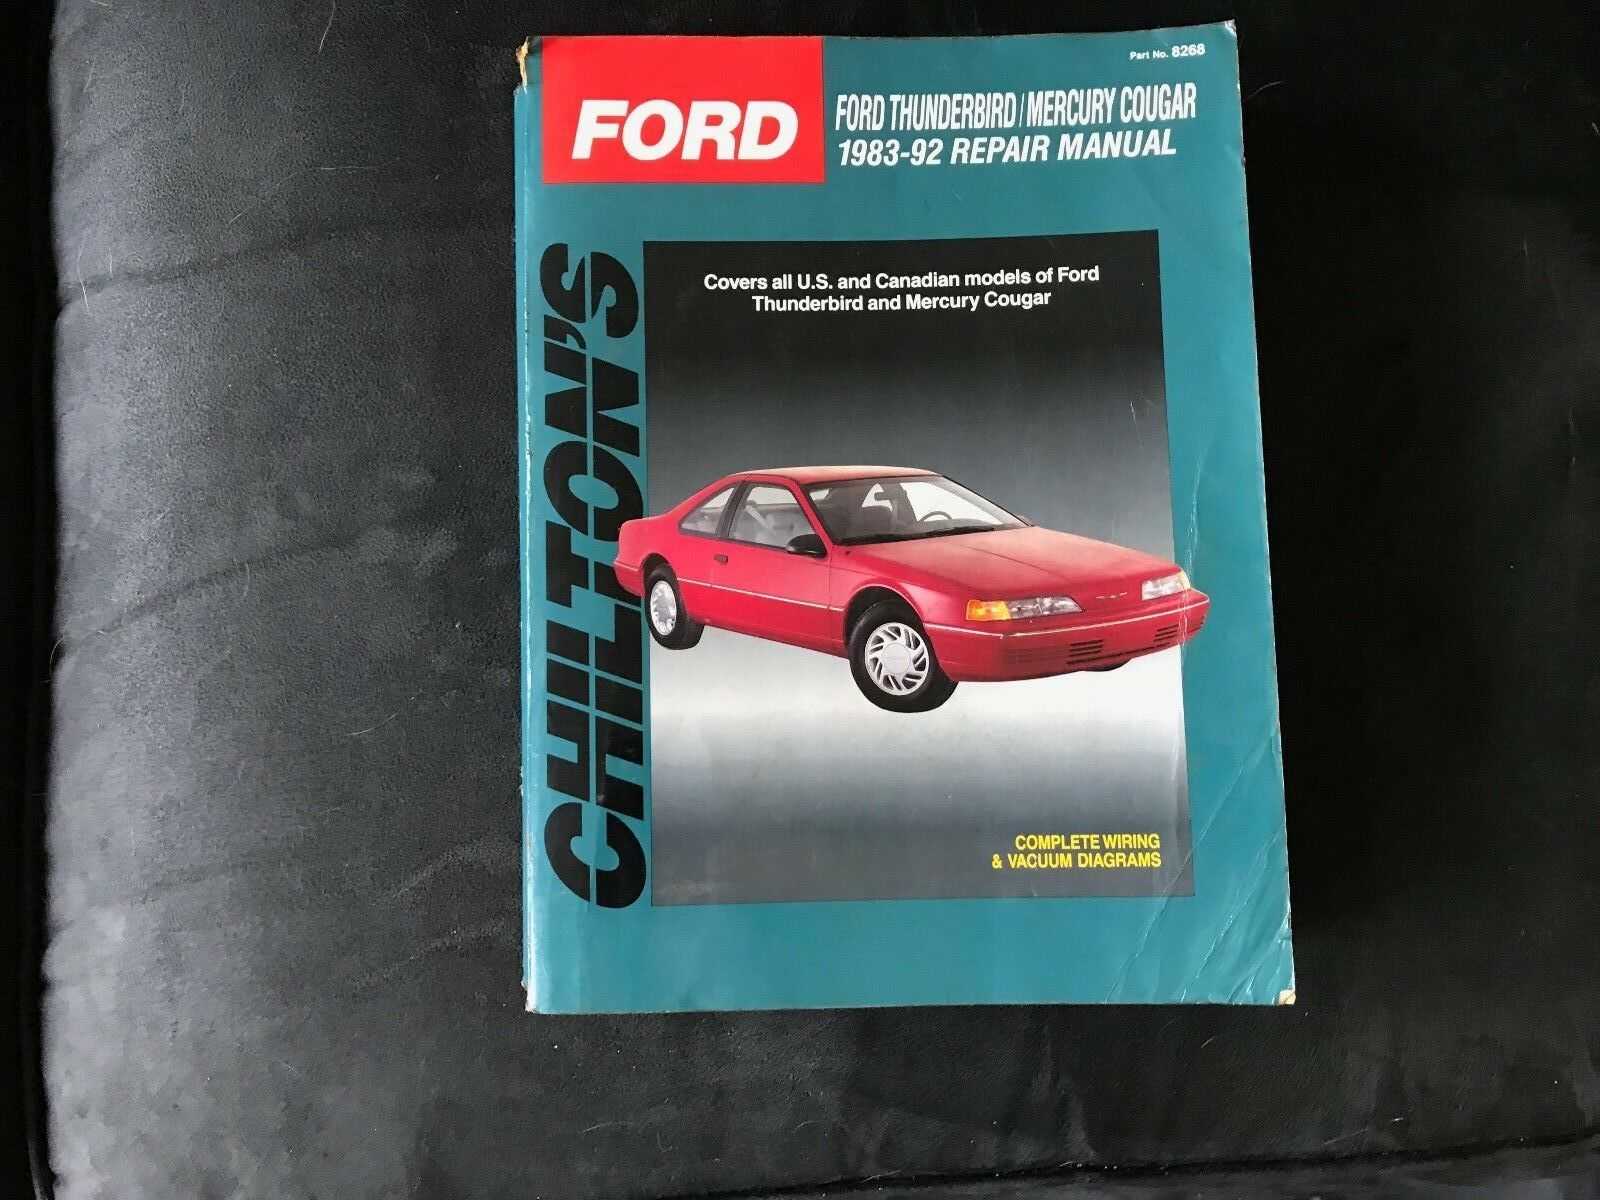 Used 1992 Mercury Cougar Headlights For Sale 92 Wiring Diagram 1983 Ford Thunderbird Automotive Repair Manual Chiltons